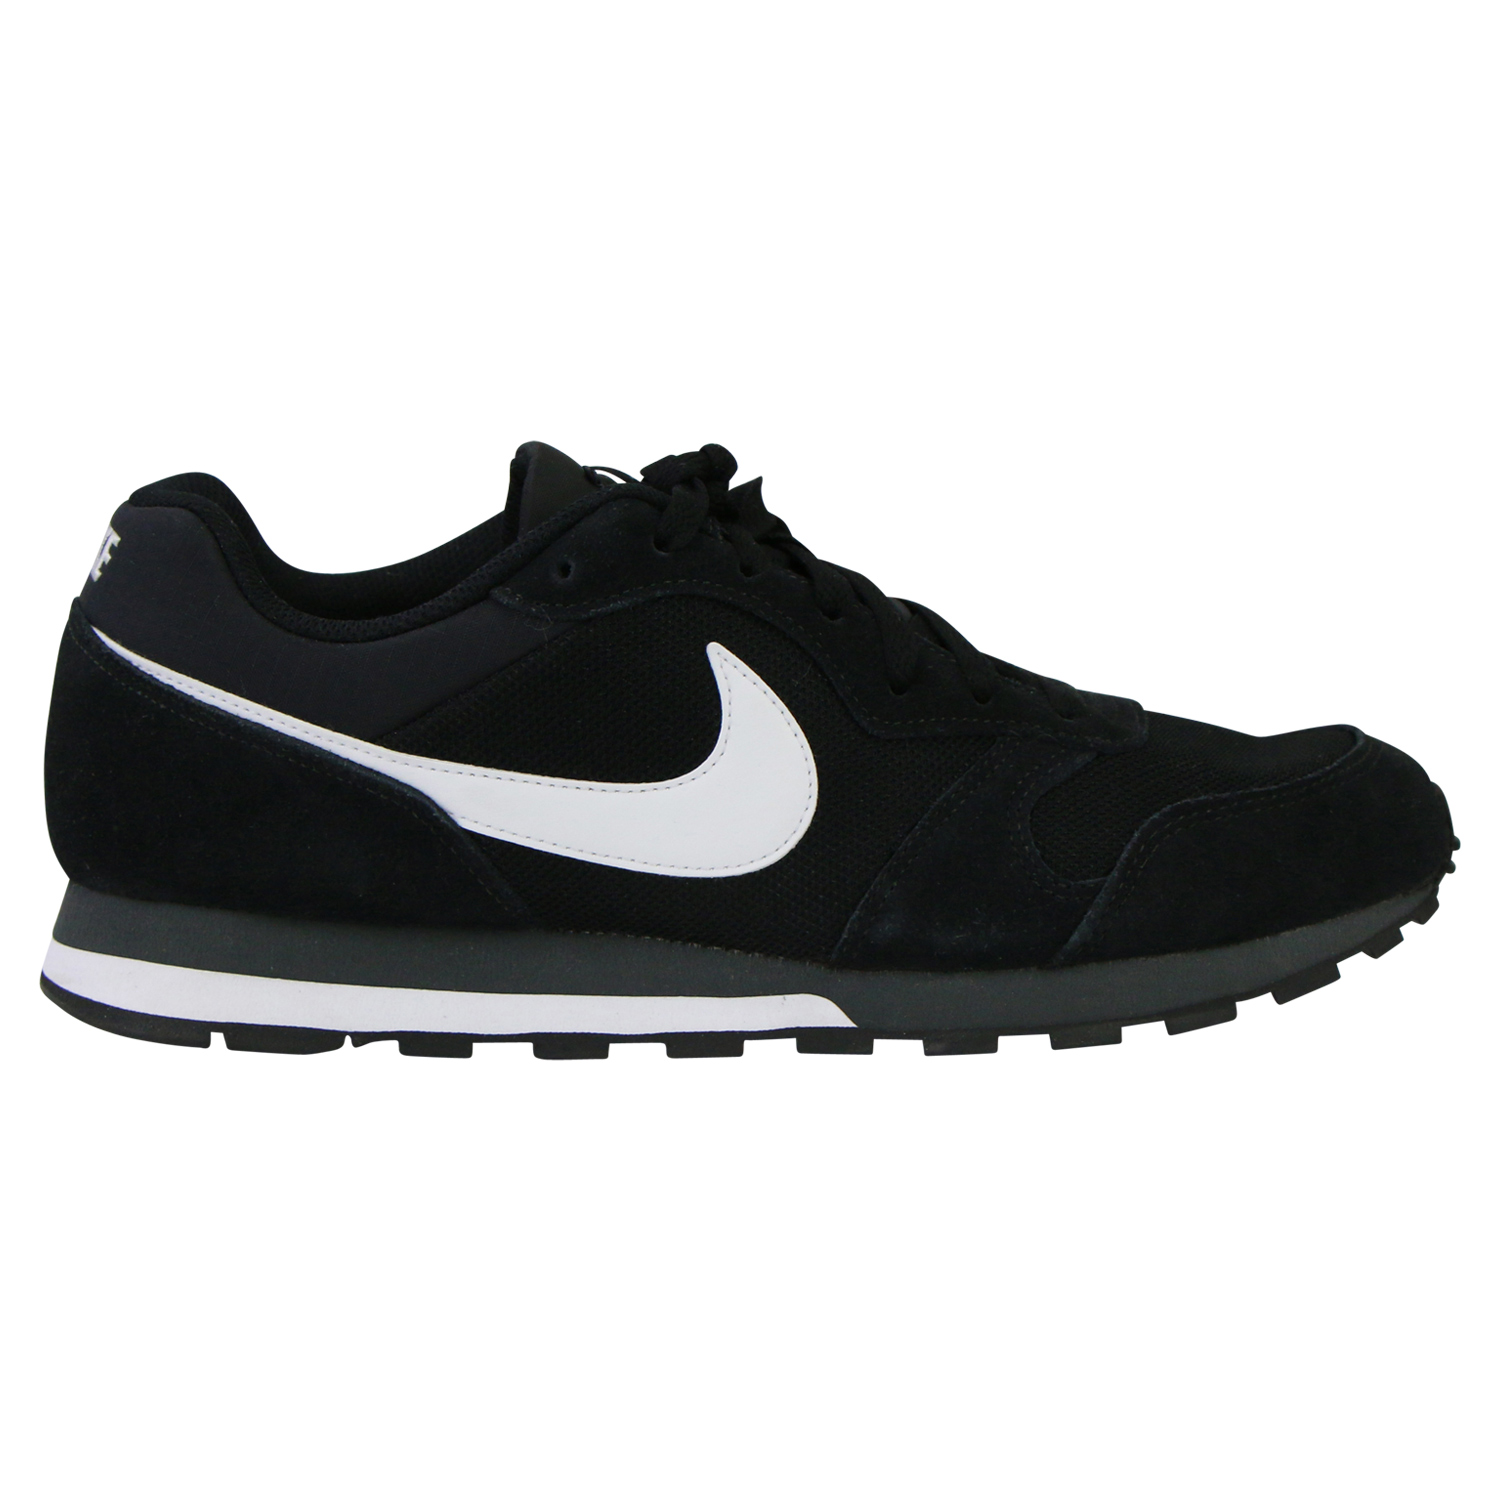 nike md runner 2 schuhe sneaker turnschuhe herren ebay. Black Bedroom Furniture Sets. Home Design Ideas